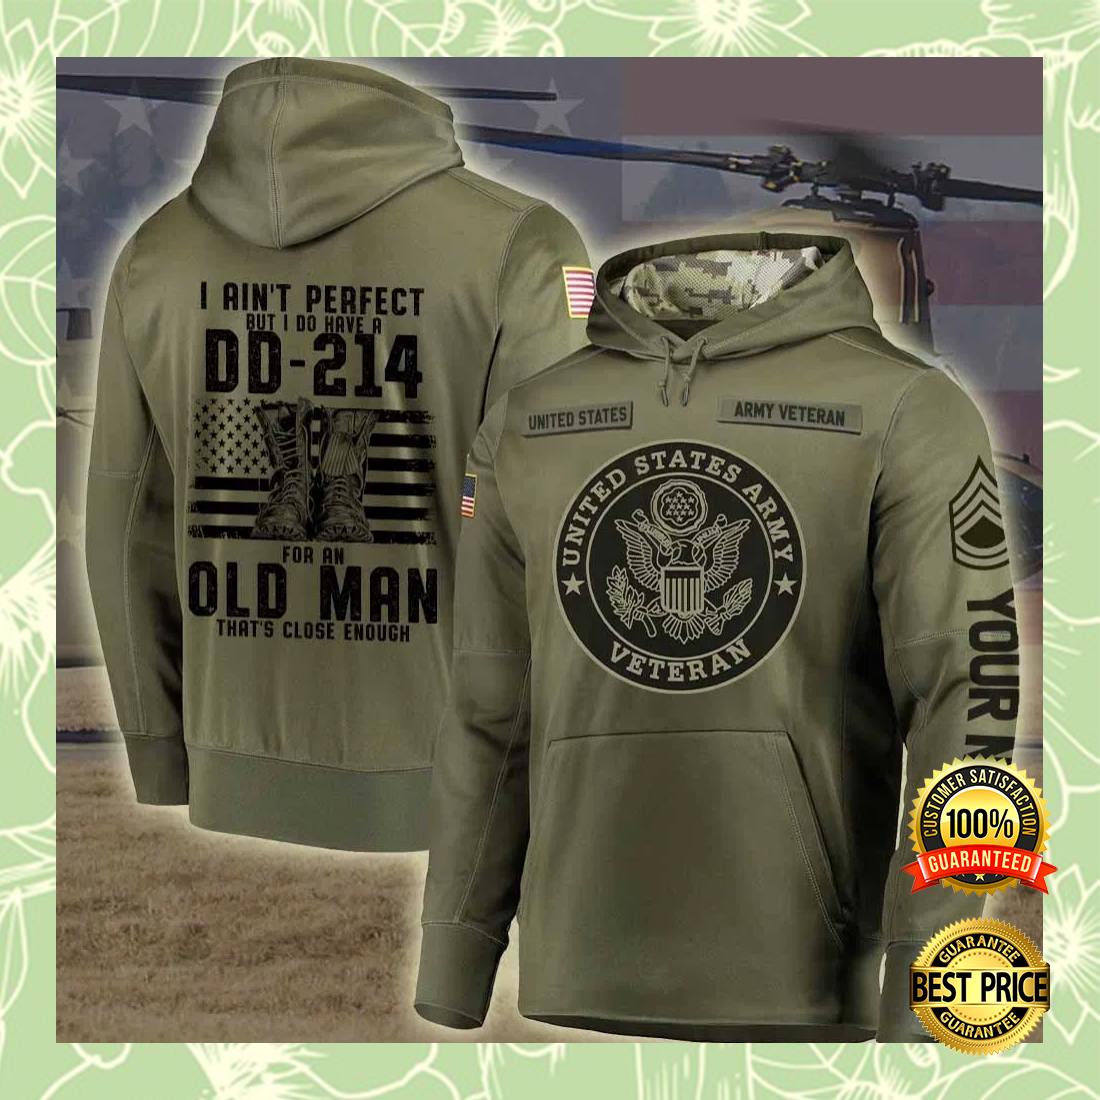 Personalized US Army i ain't perfect but i do have a dd 214 for an old man all over printed 3D hoodie 5